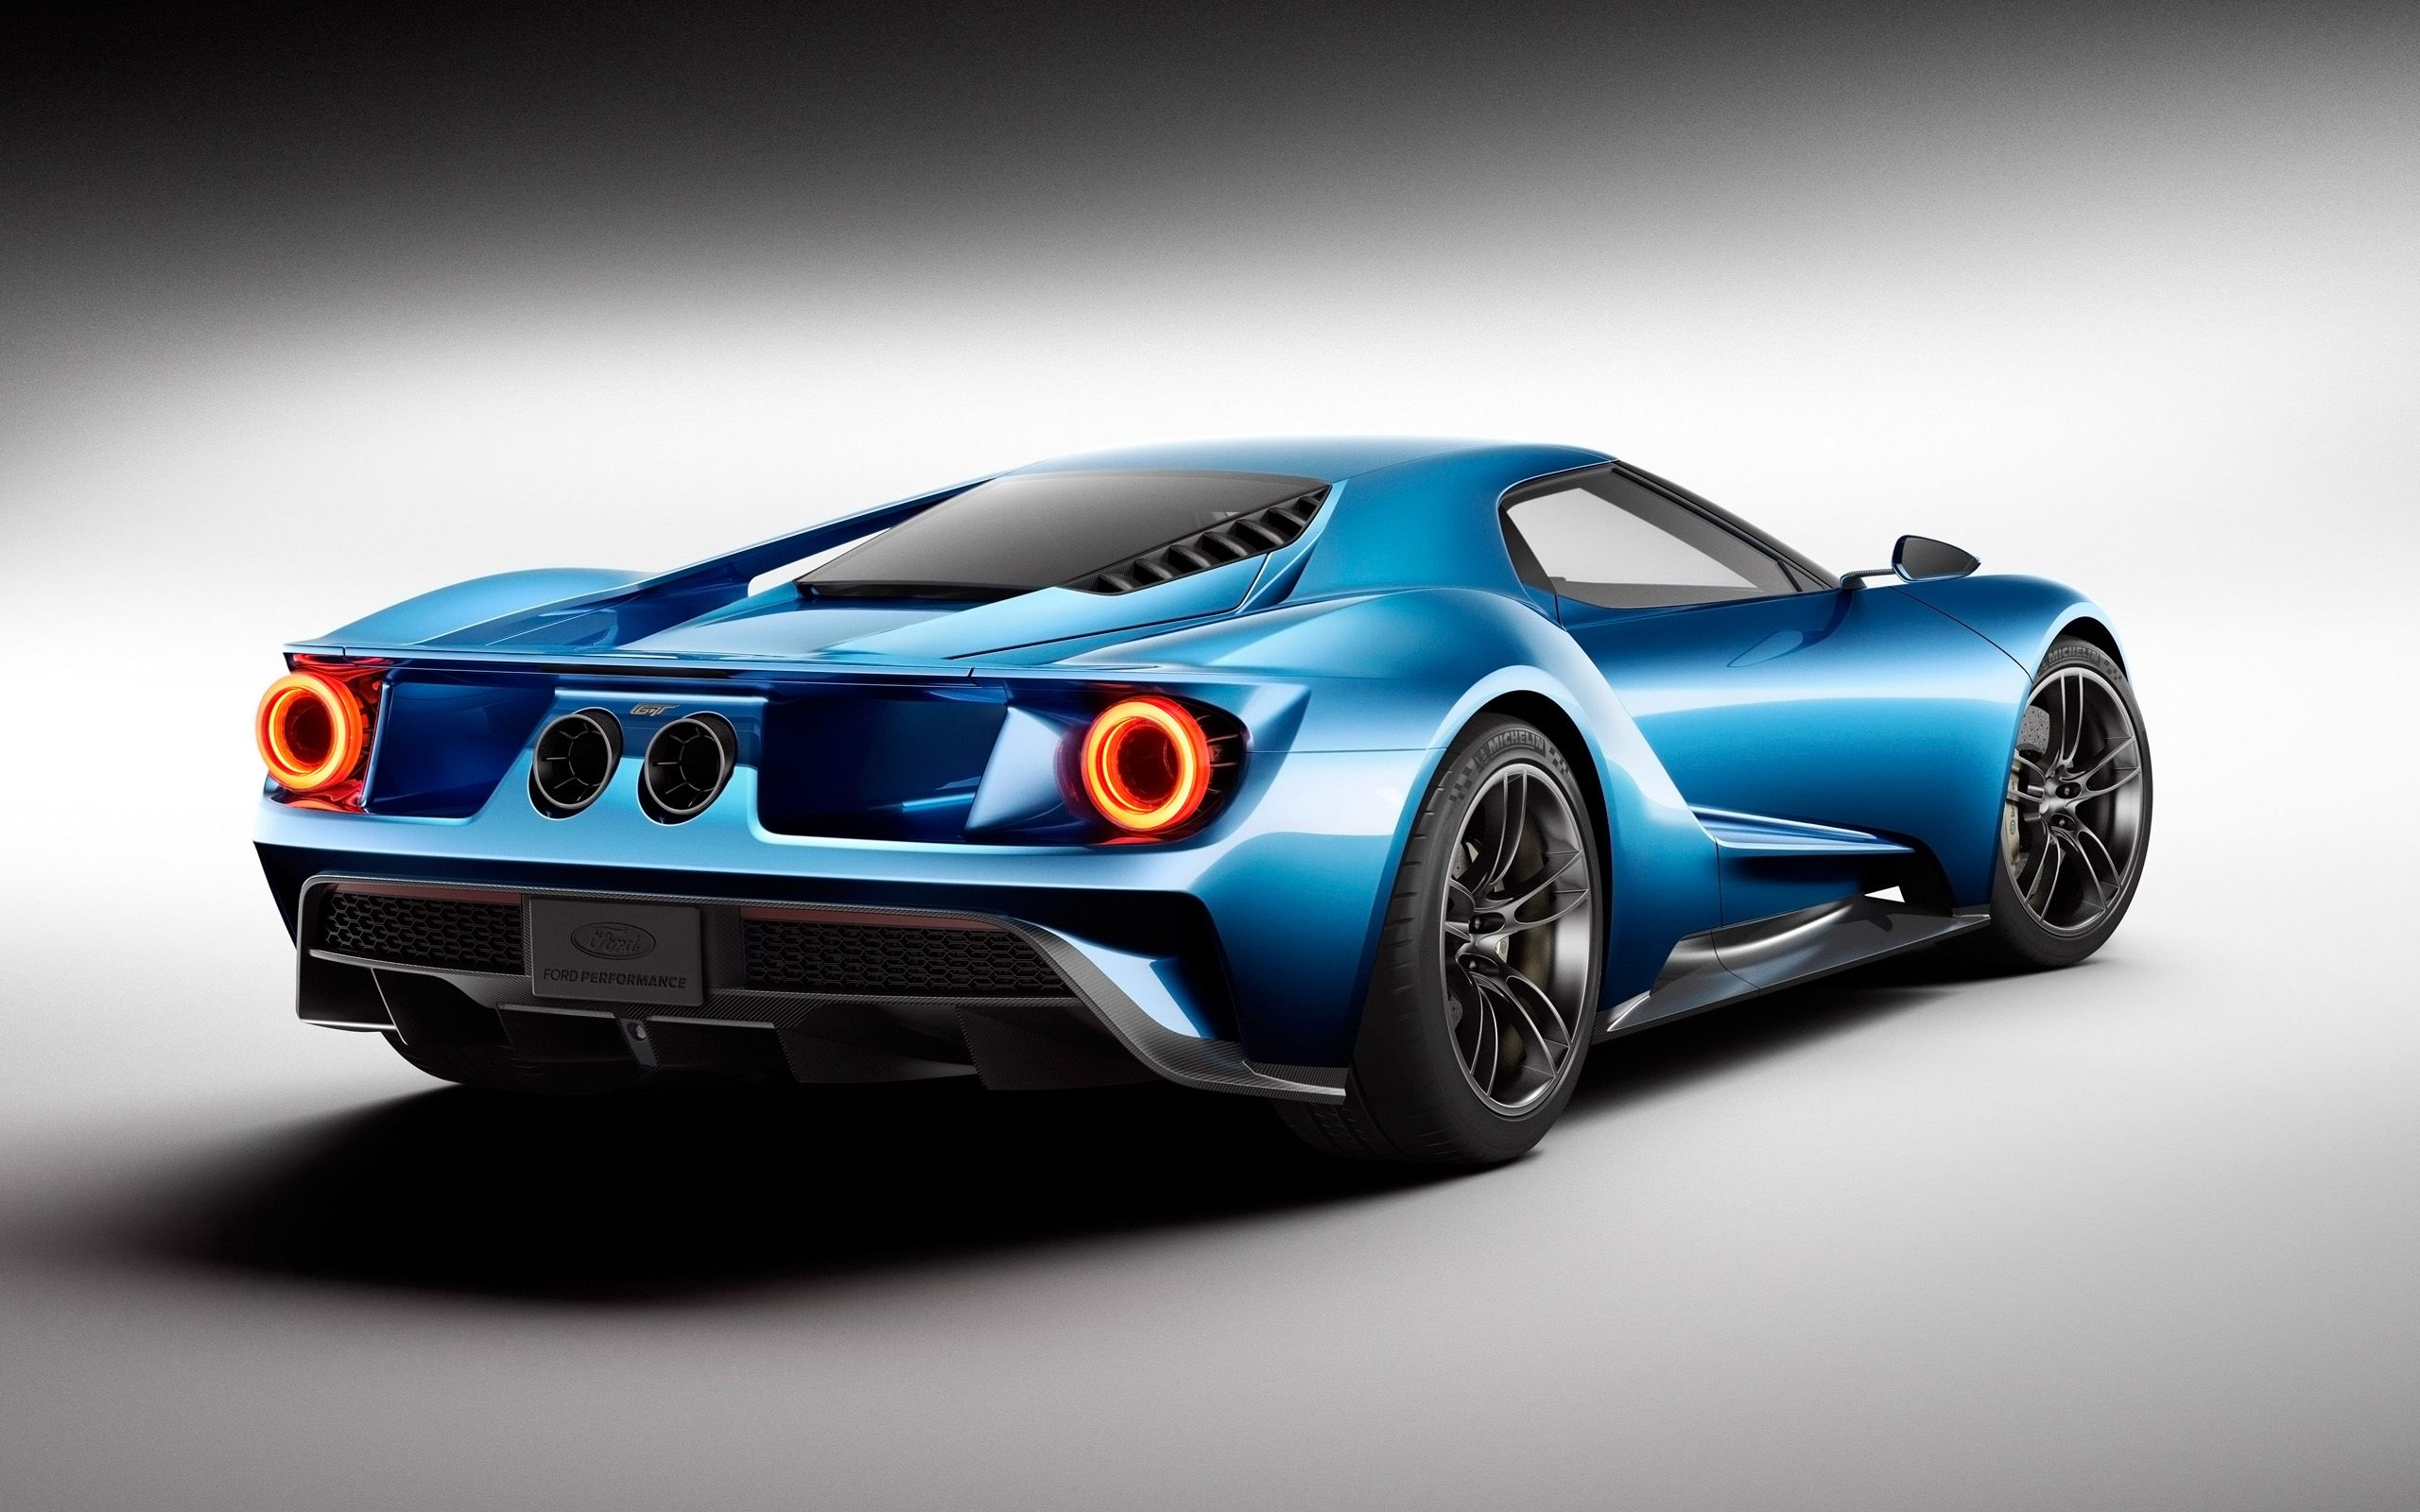 2016 ford gt sport blue wallpaper 2017 ford gt concept car beautiful - Ford Gt 2 Wallpapers 2016 Ford Gt 2 Wallpaper Hd Car Wallpapers Within Ford Gt